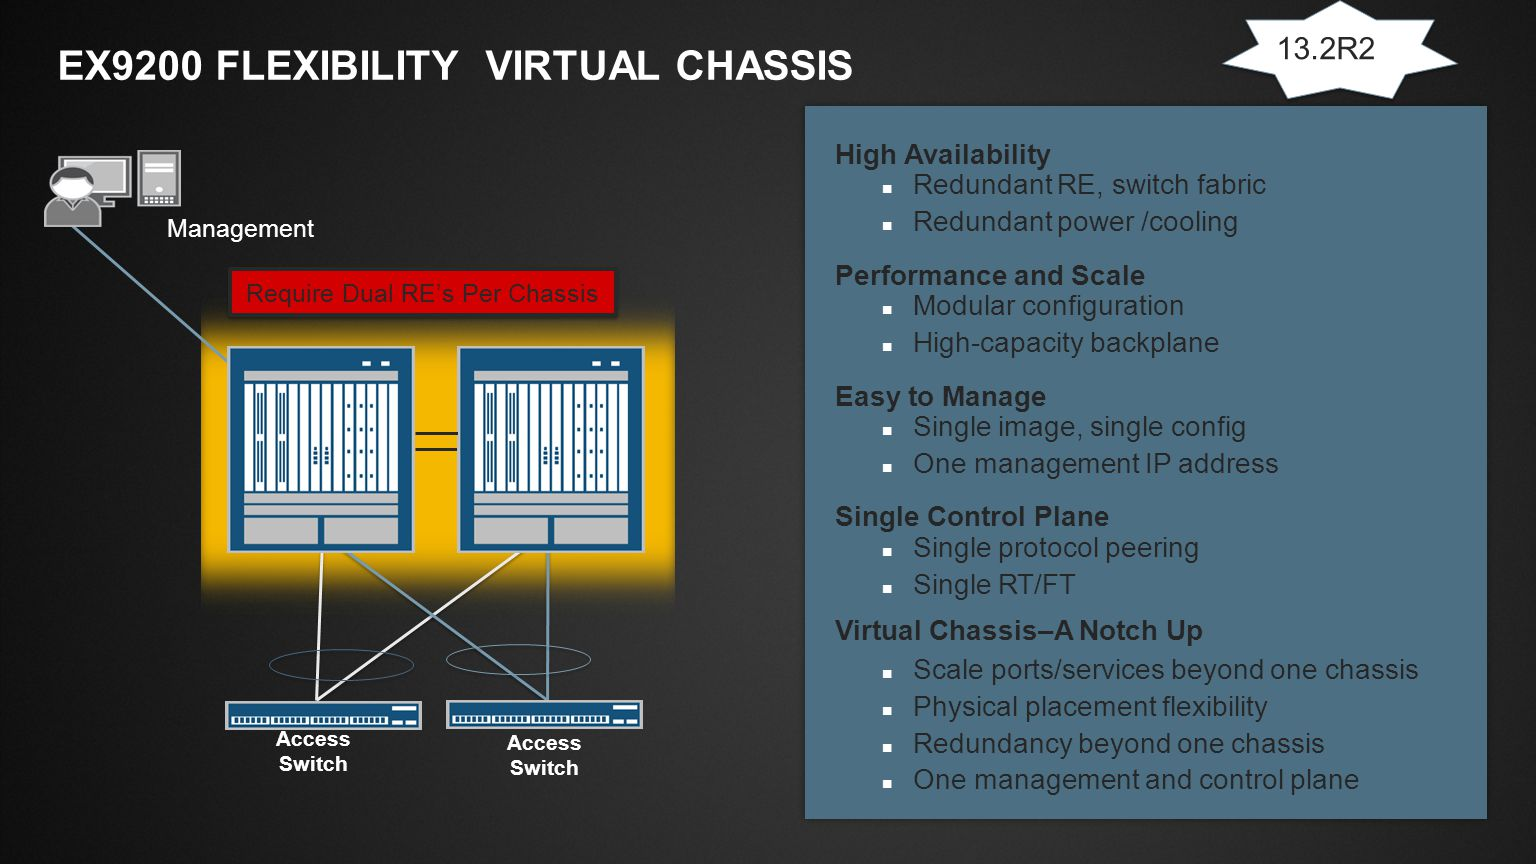 EX9200 Flexibility Virtual Chassis